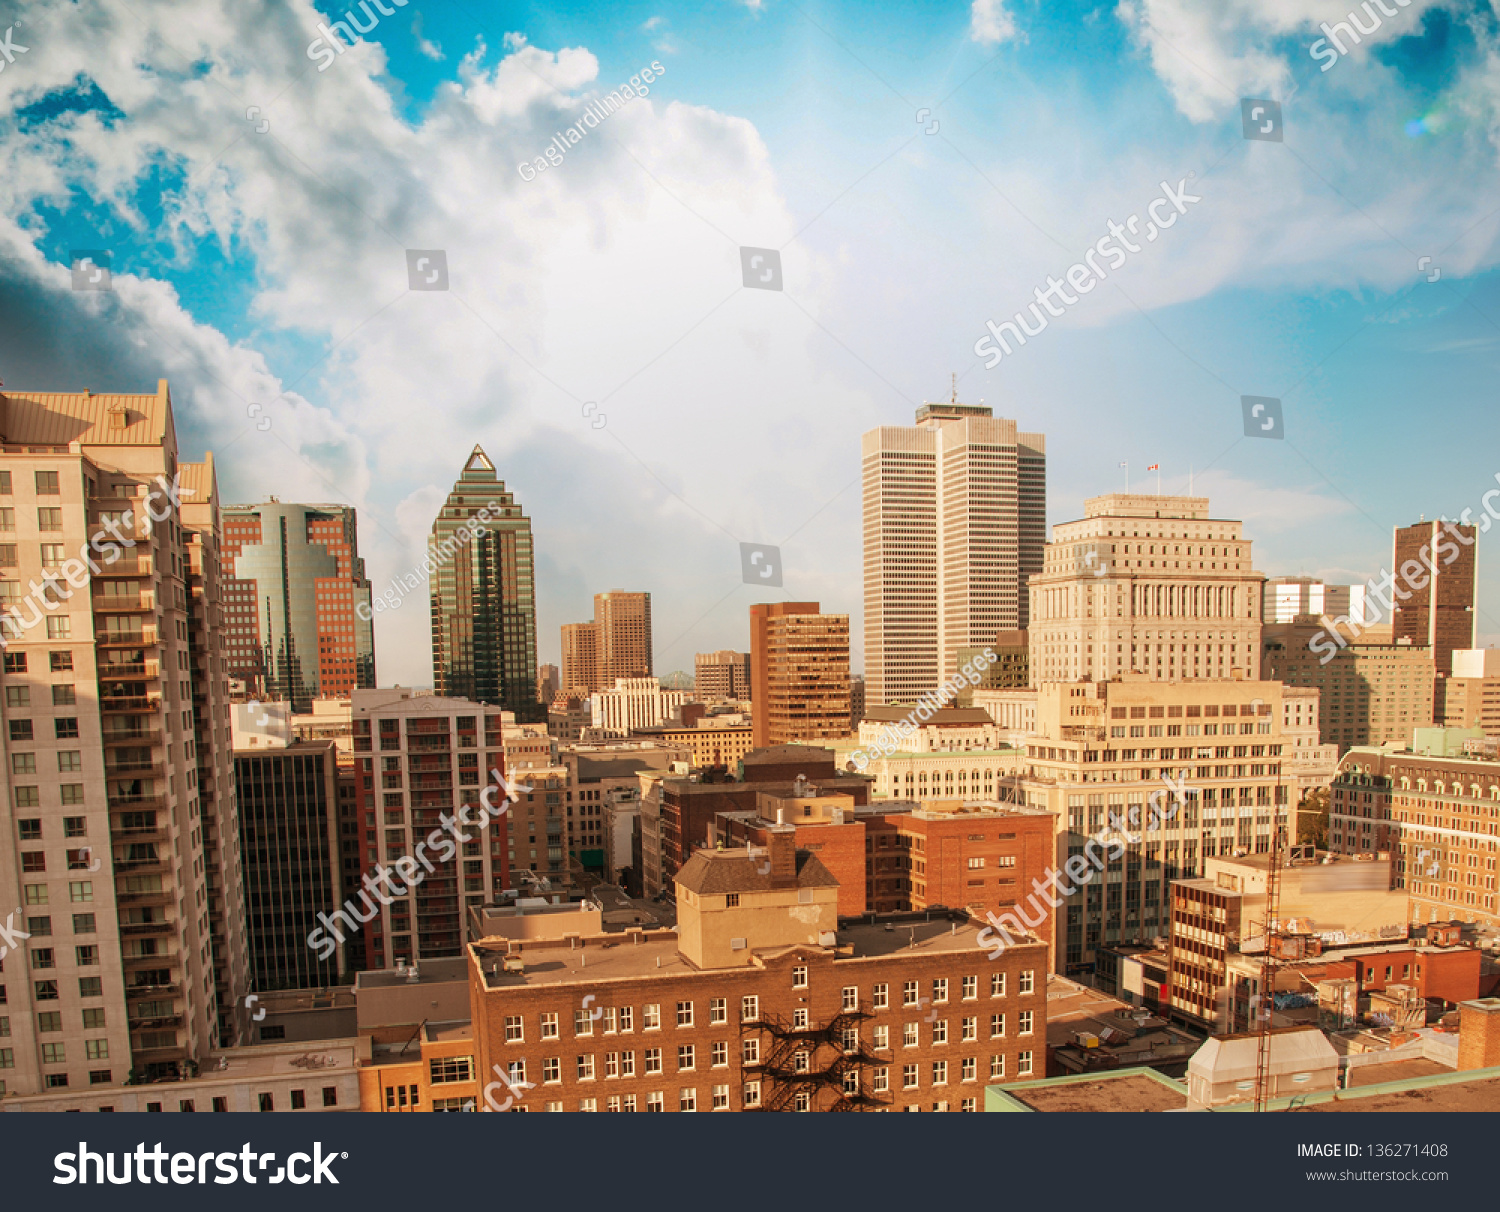 Beautiful modern buildings and skyscrapers stock photo for Beautiful modern buildings